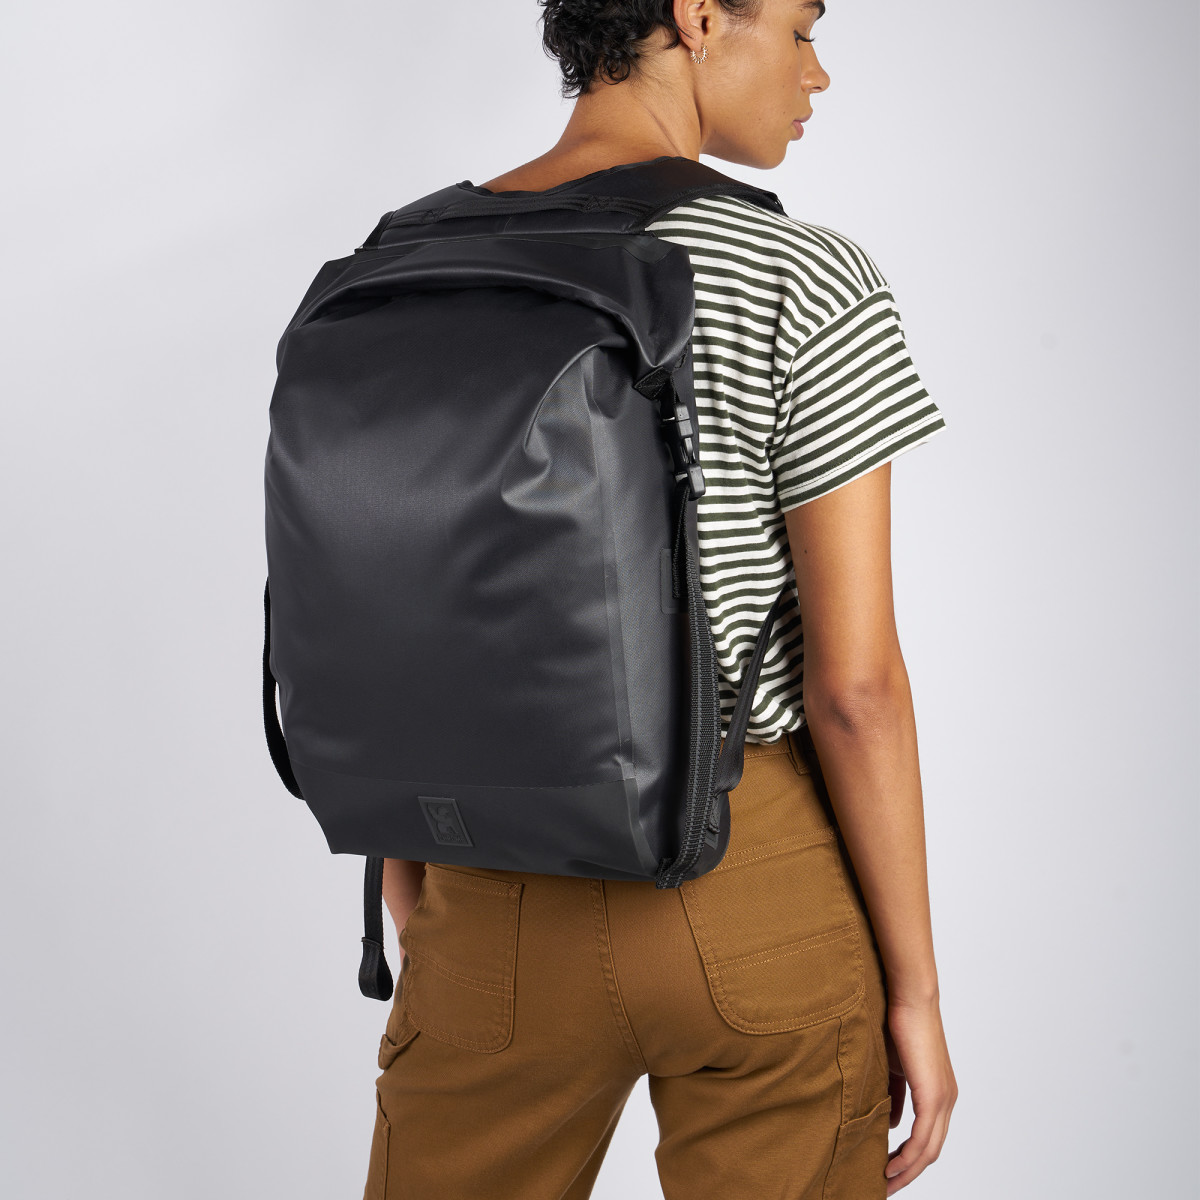 Chrome Industries Urban Ex Rolltop 26L Backpack